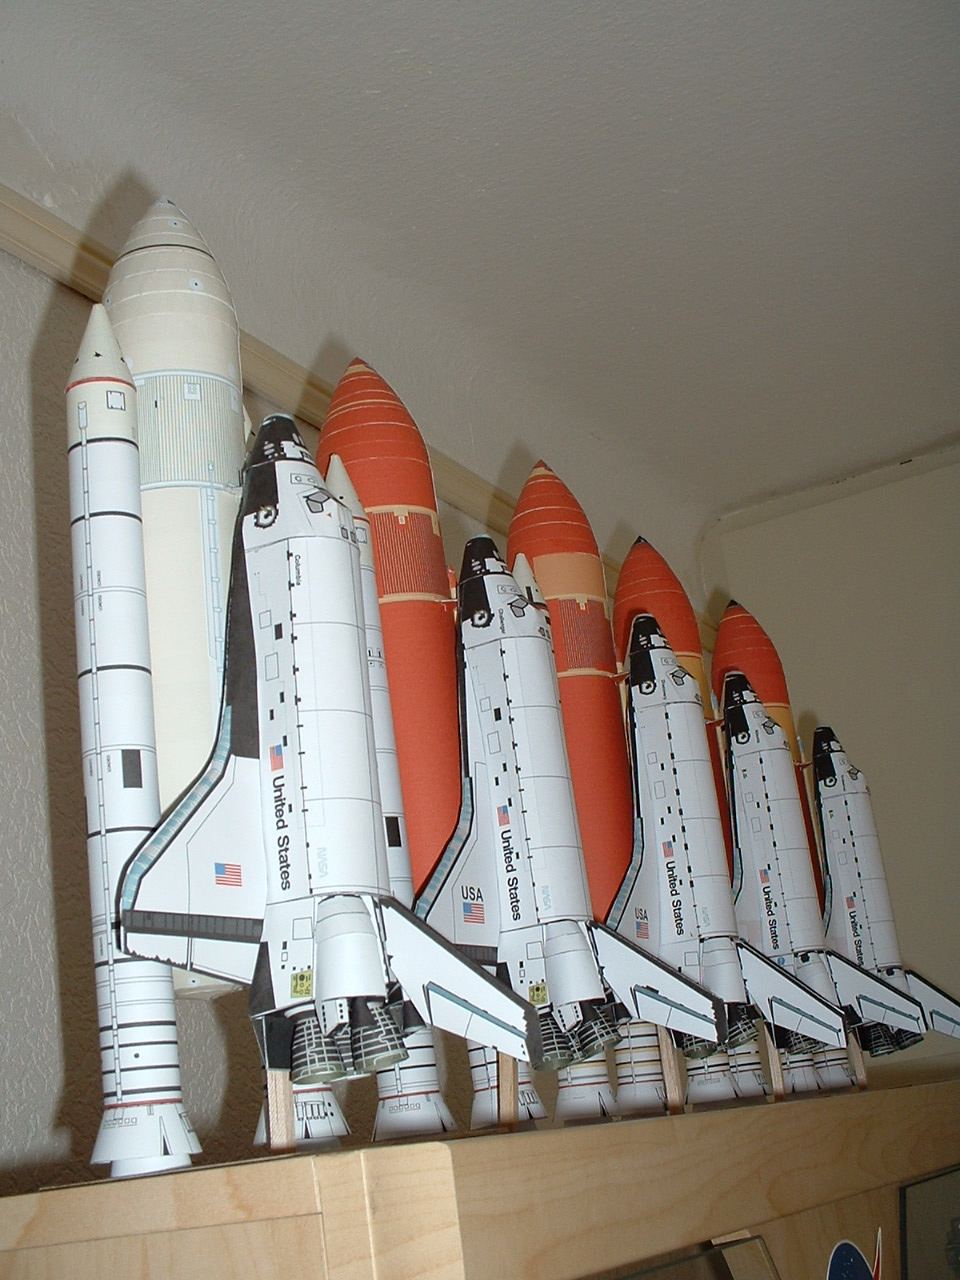 Space Shuttle Paper Model - Pics about space